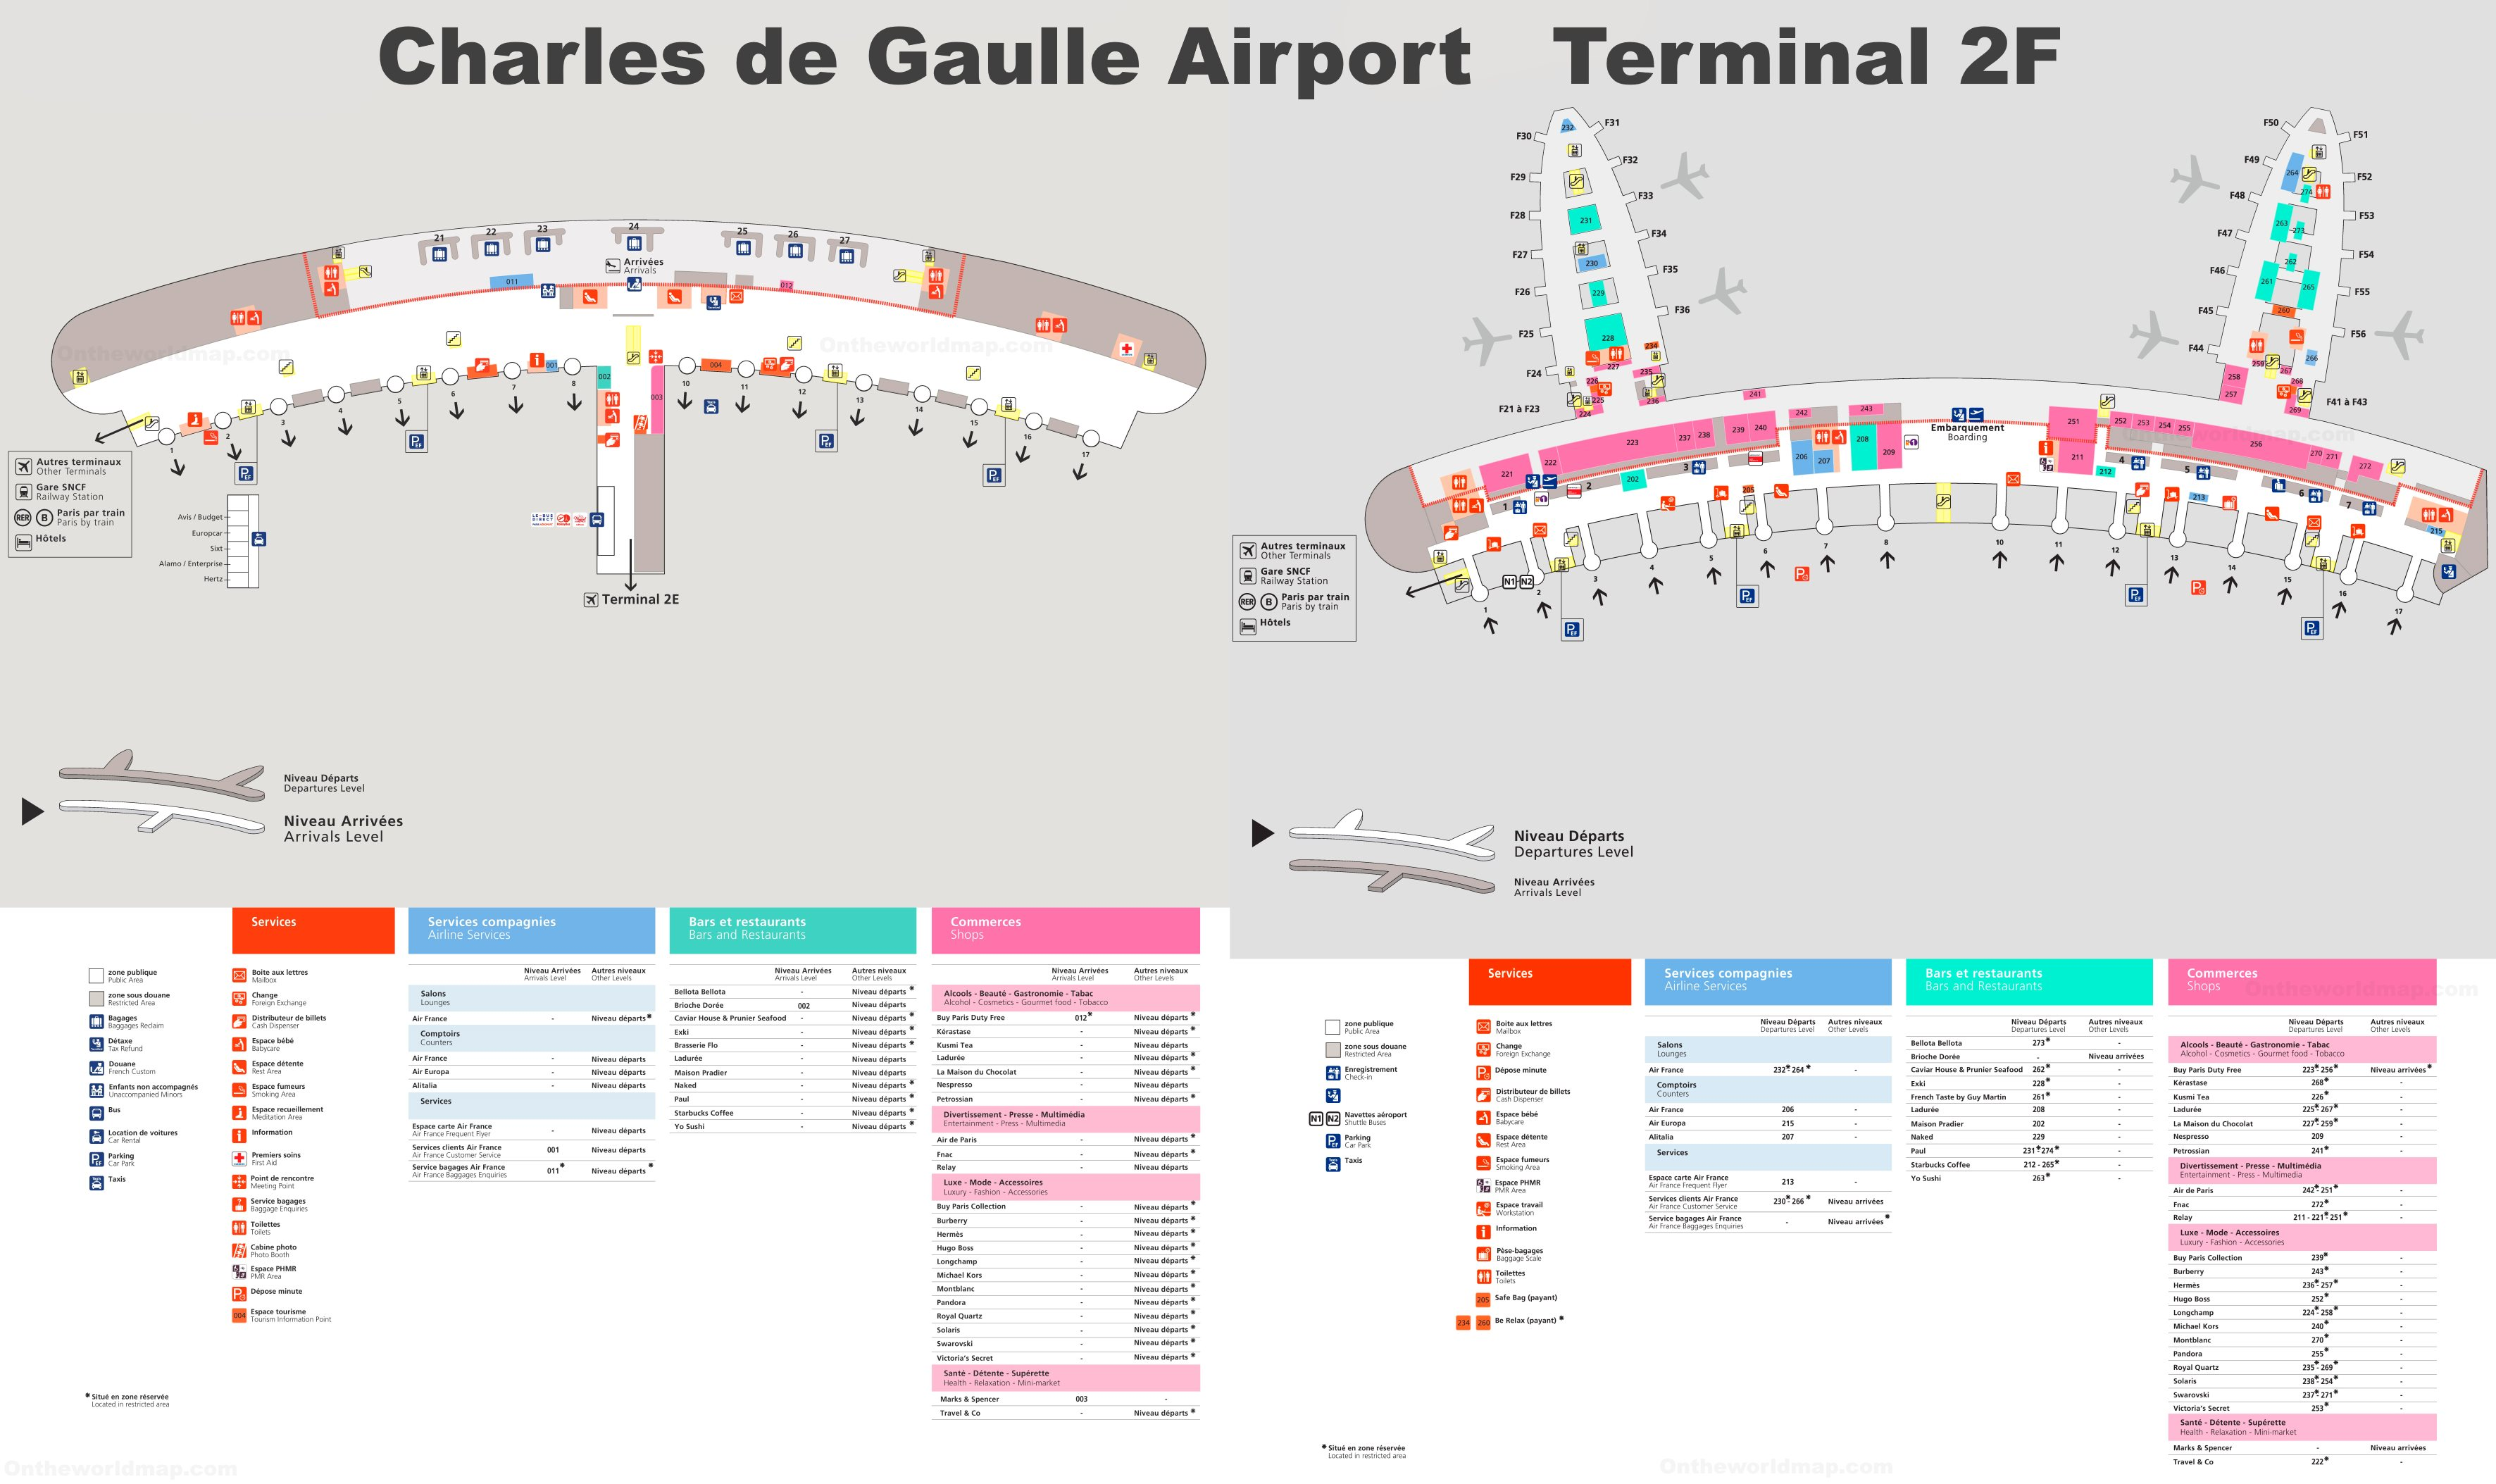 Charles de Gaulle Airport Terminal 2F Map on